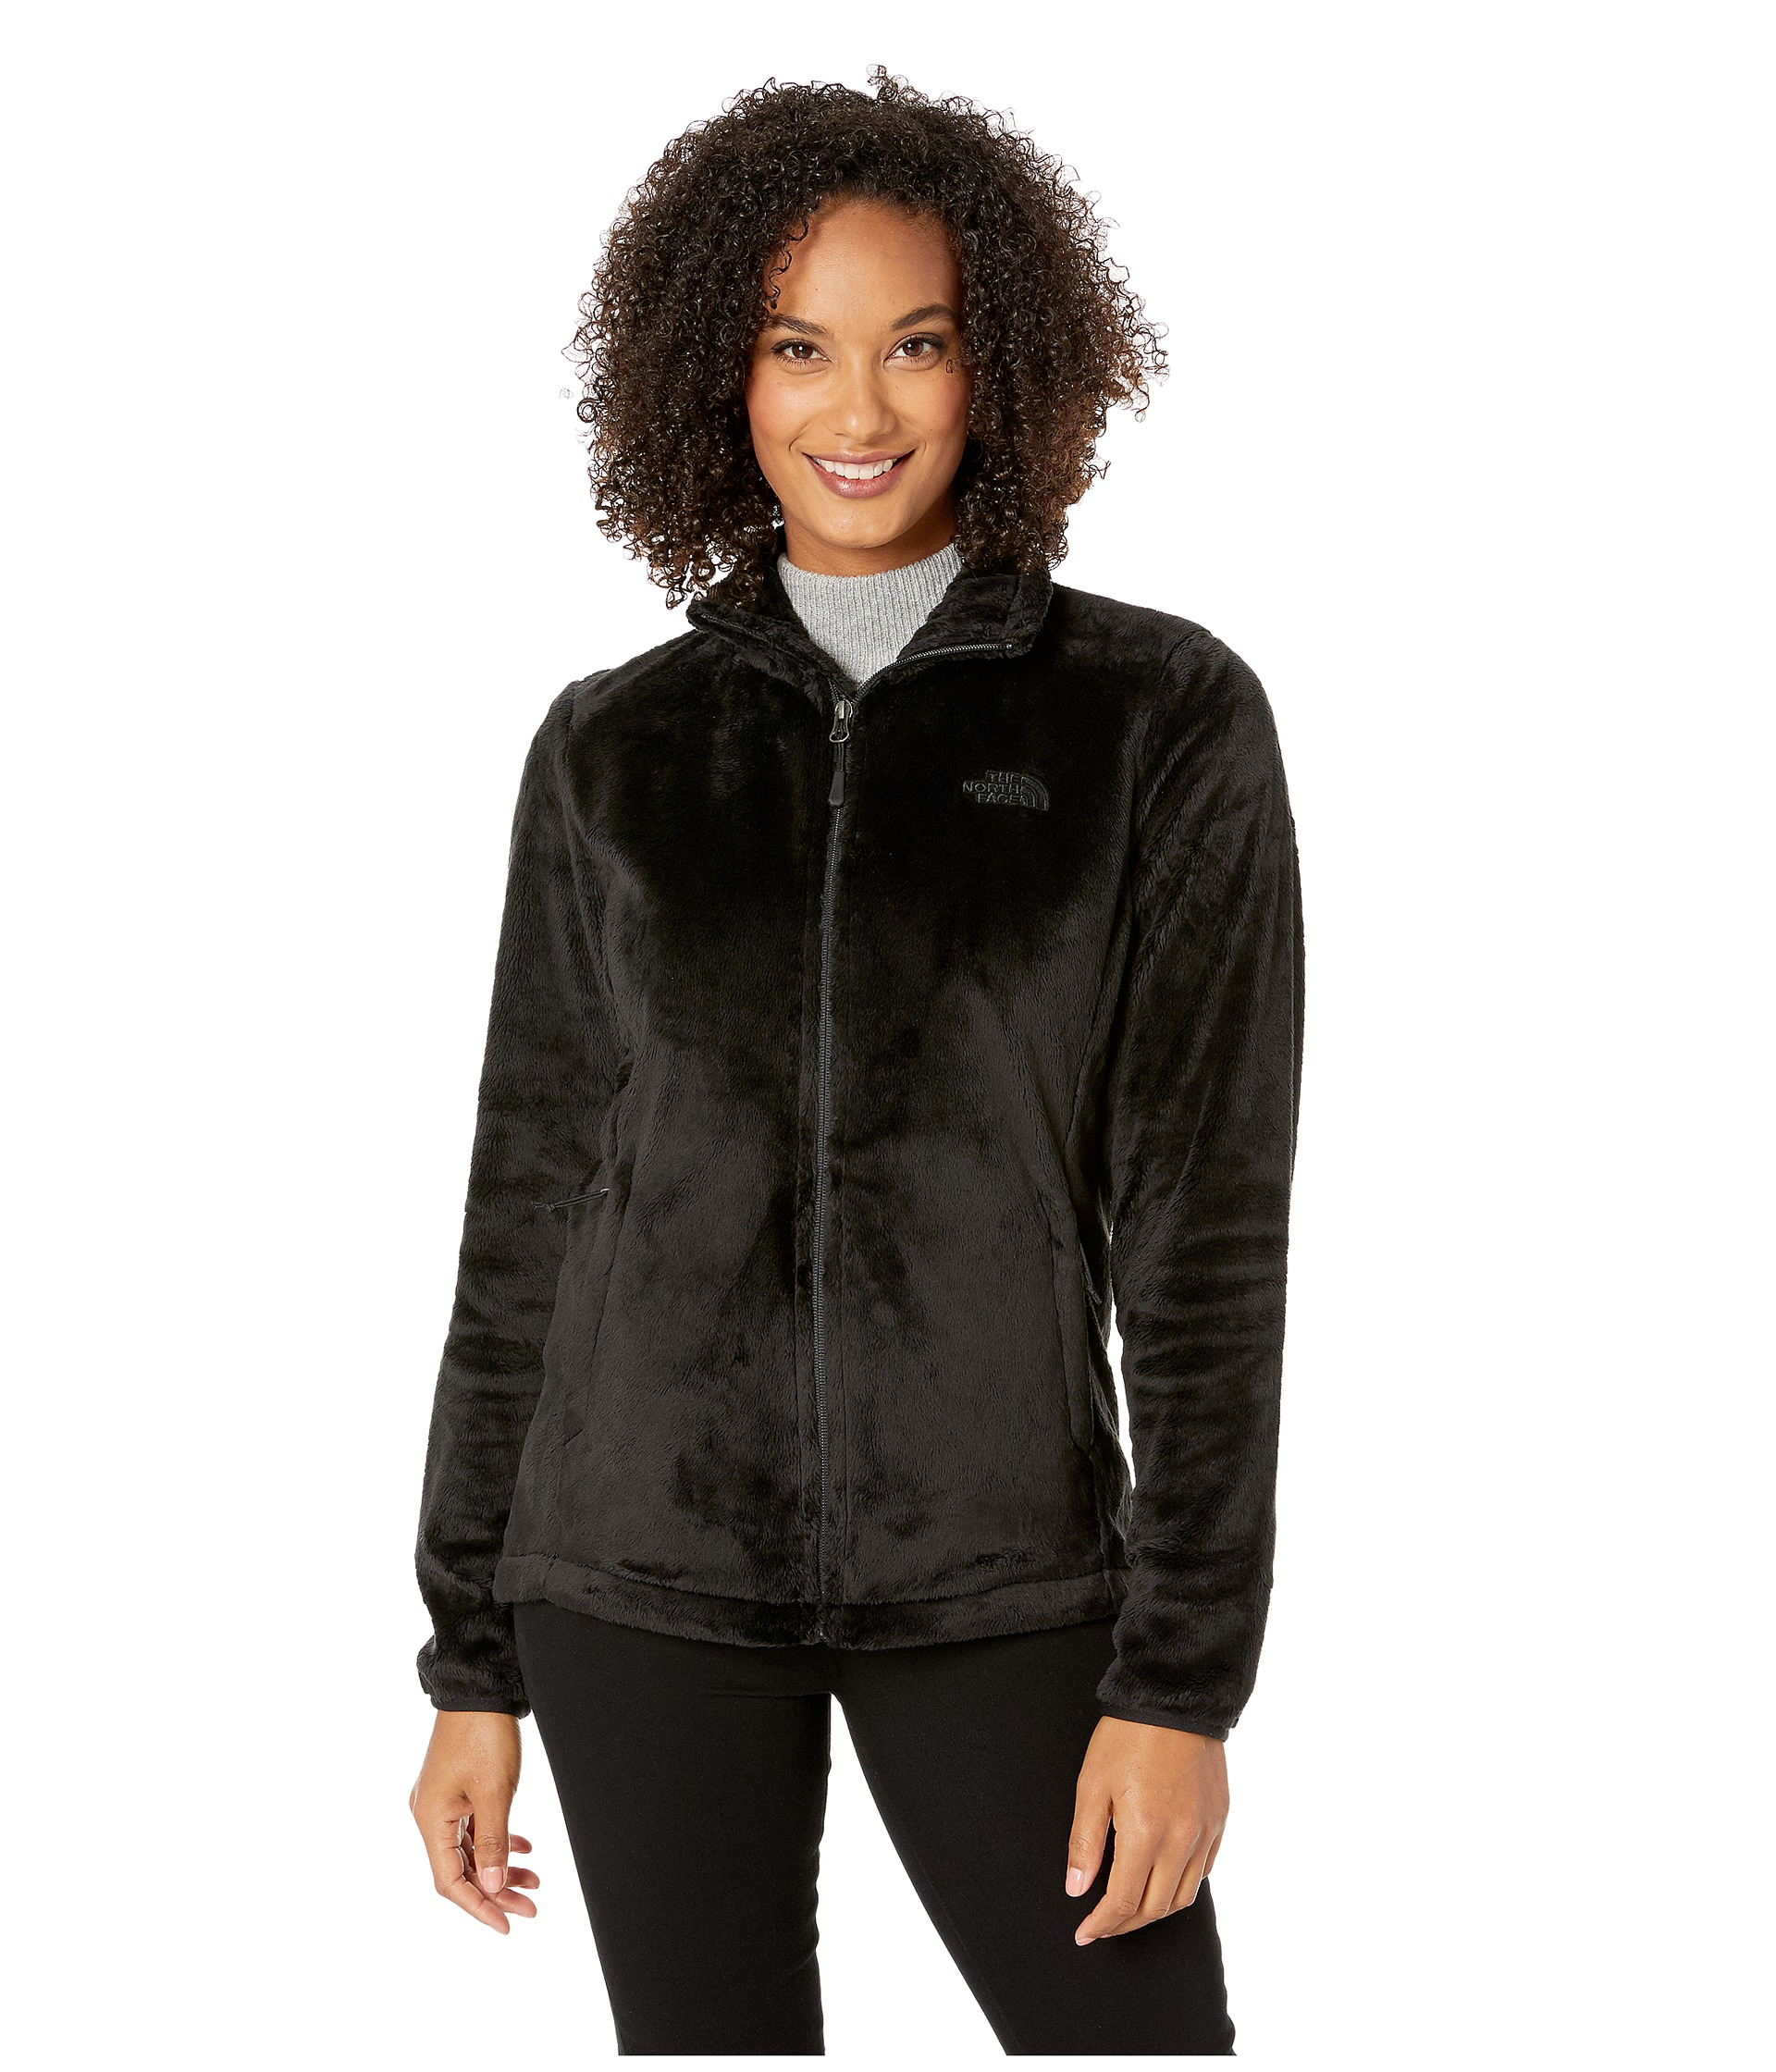 Shop for The North Face Womens Plus Size Jackets at REI - FREE SHIPPING With $50 minimum purchase. Top quality, great selection and expert advice you can trust. % Satisfaction Guarantee.